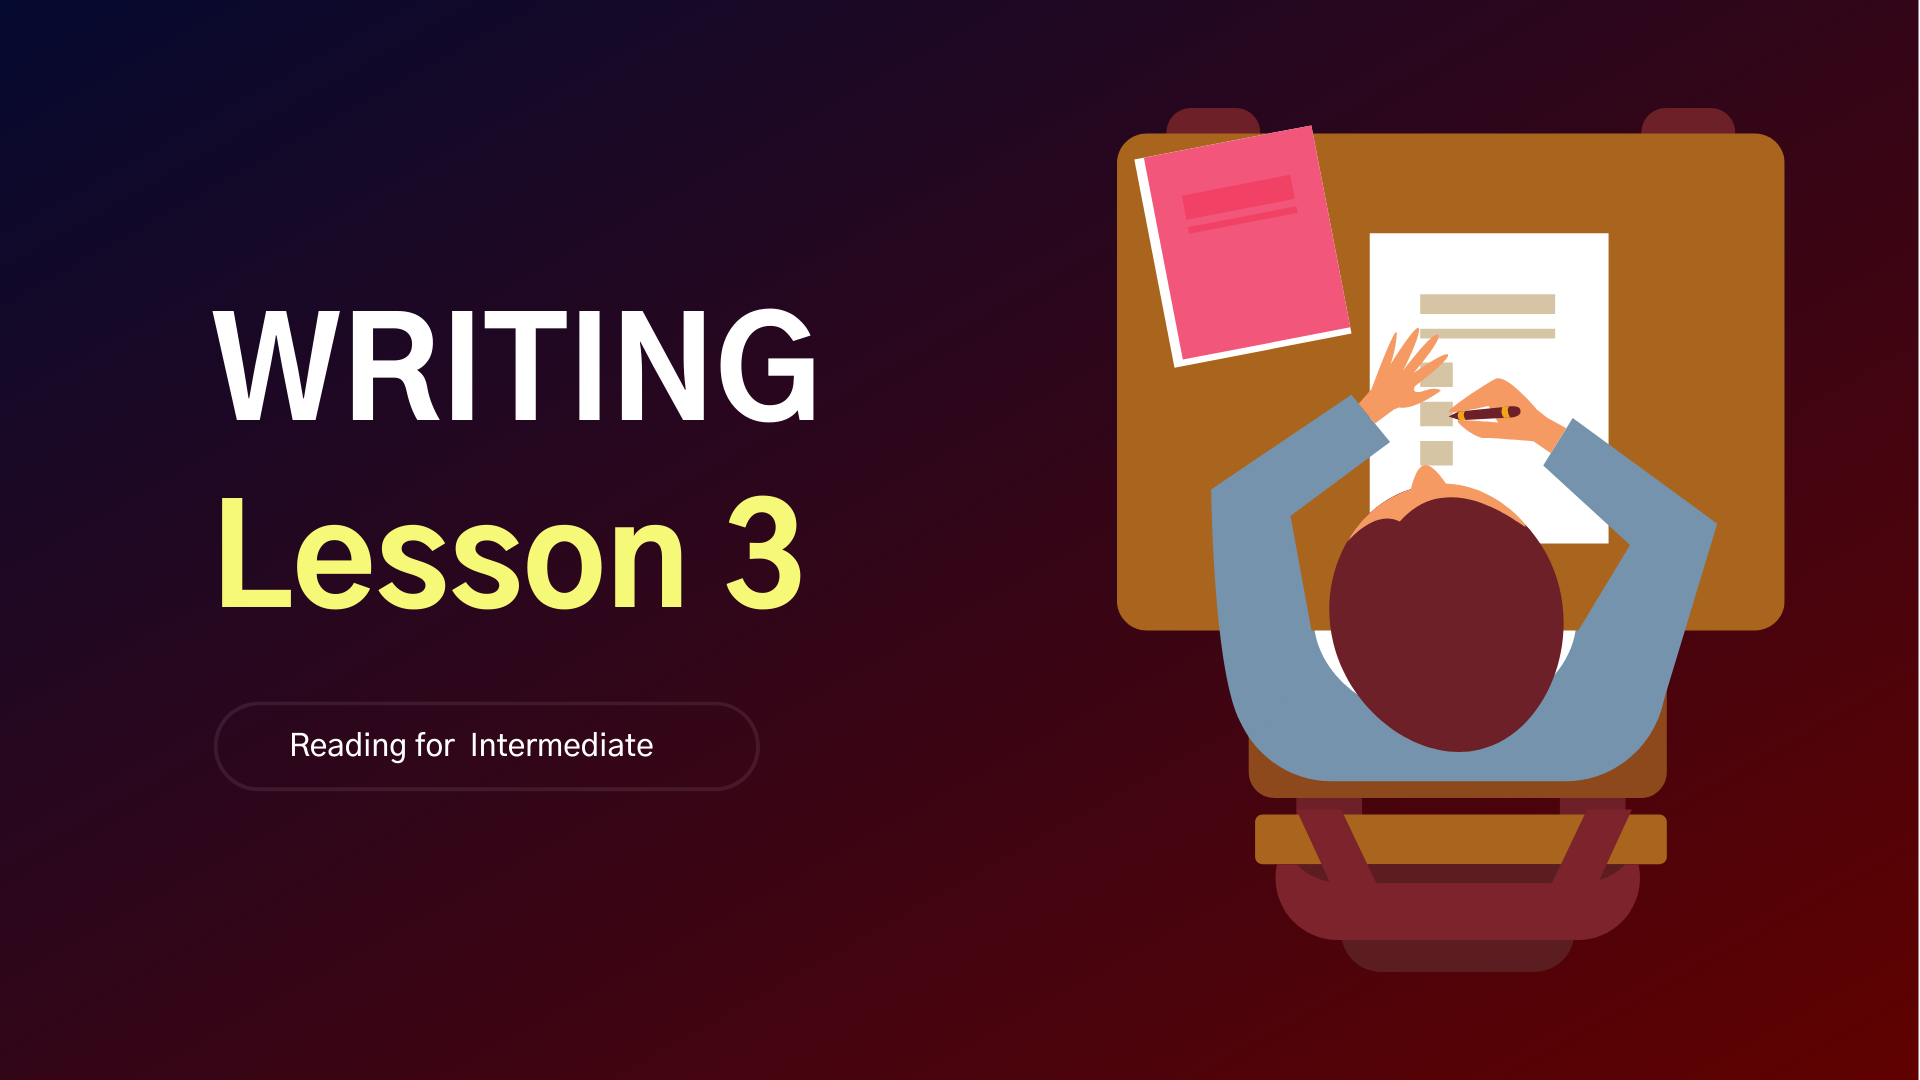 Lesson 3 - Writing for Intermediate